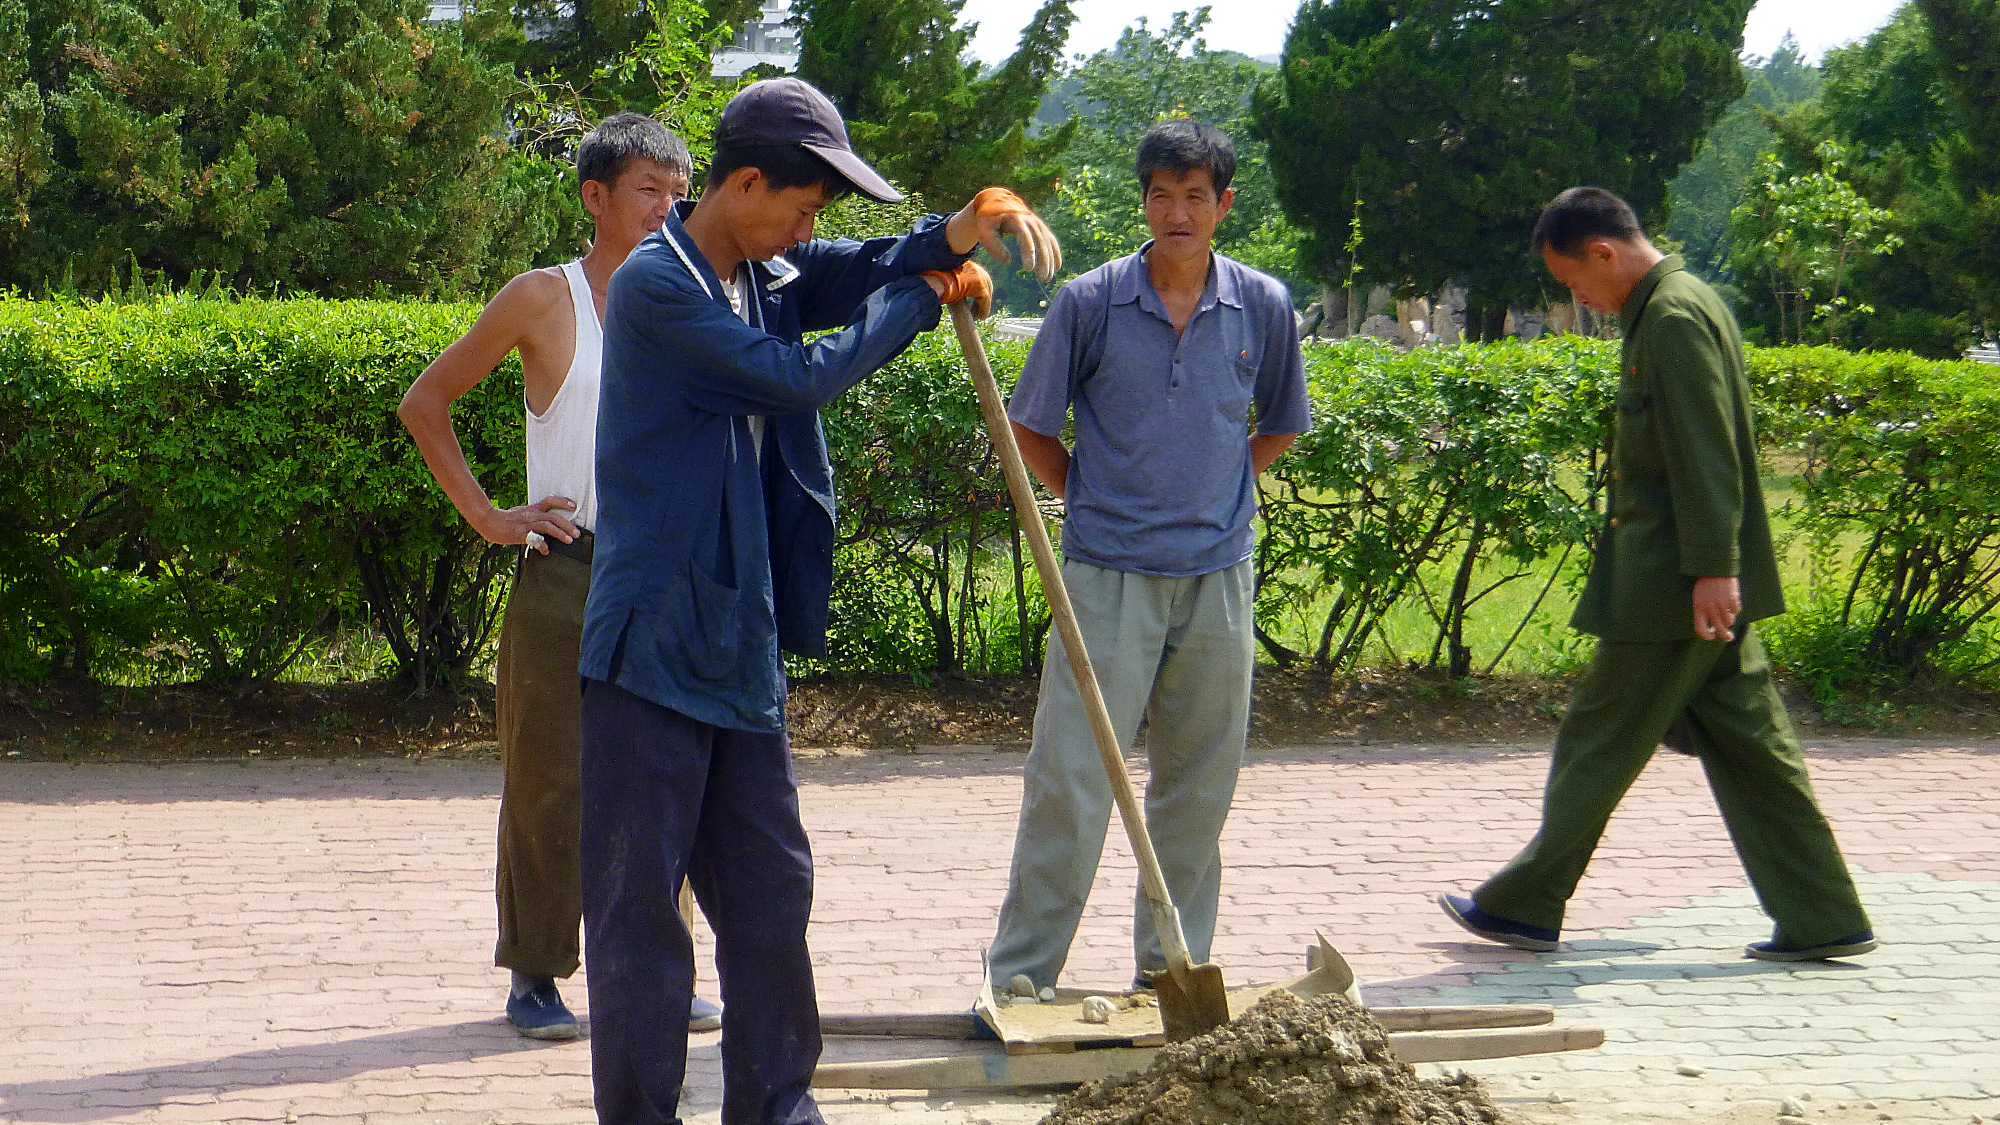 North Korean workers digging a hole in Pyongyang.